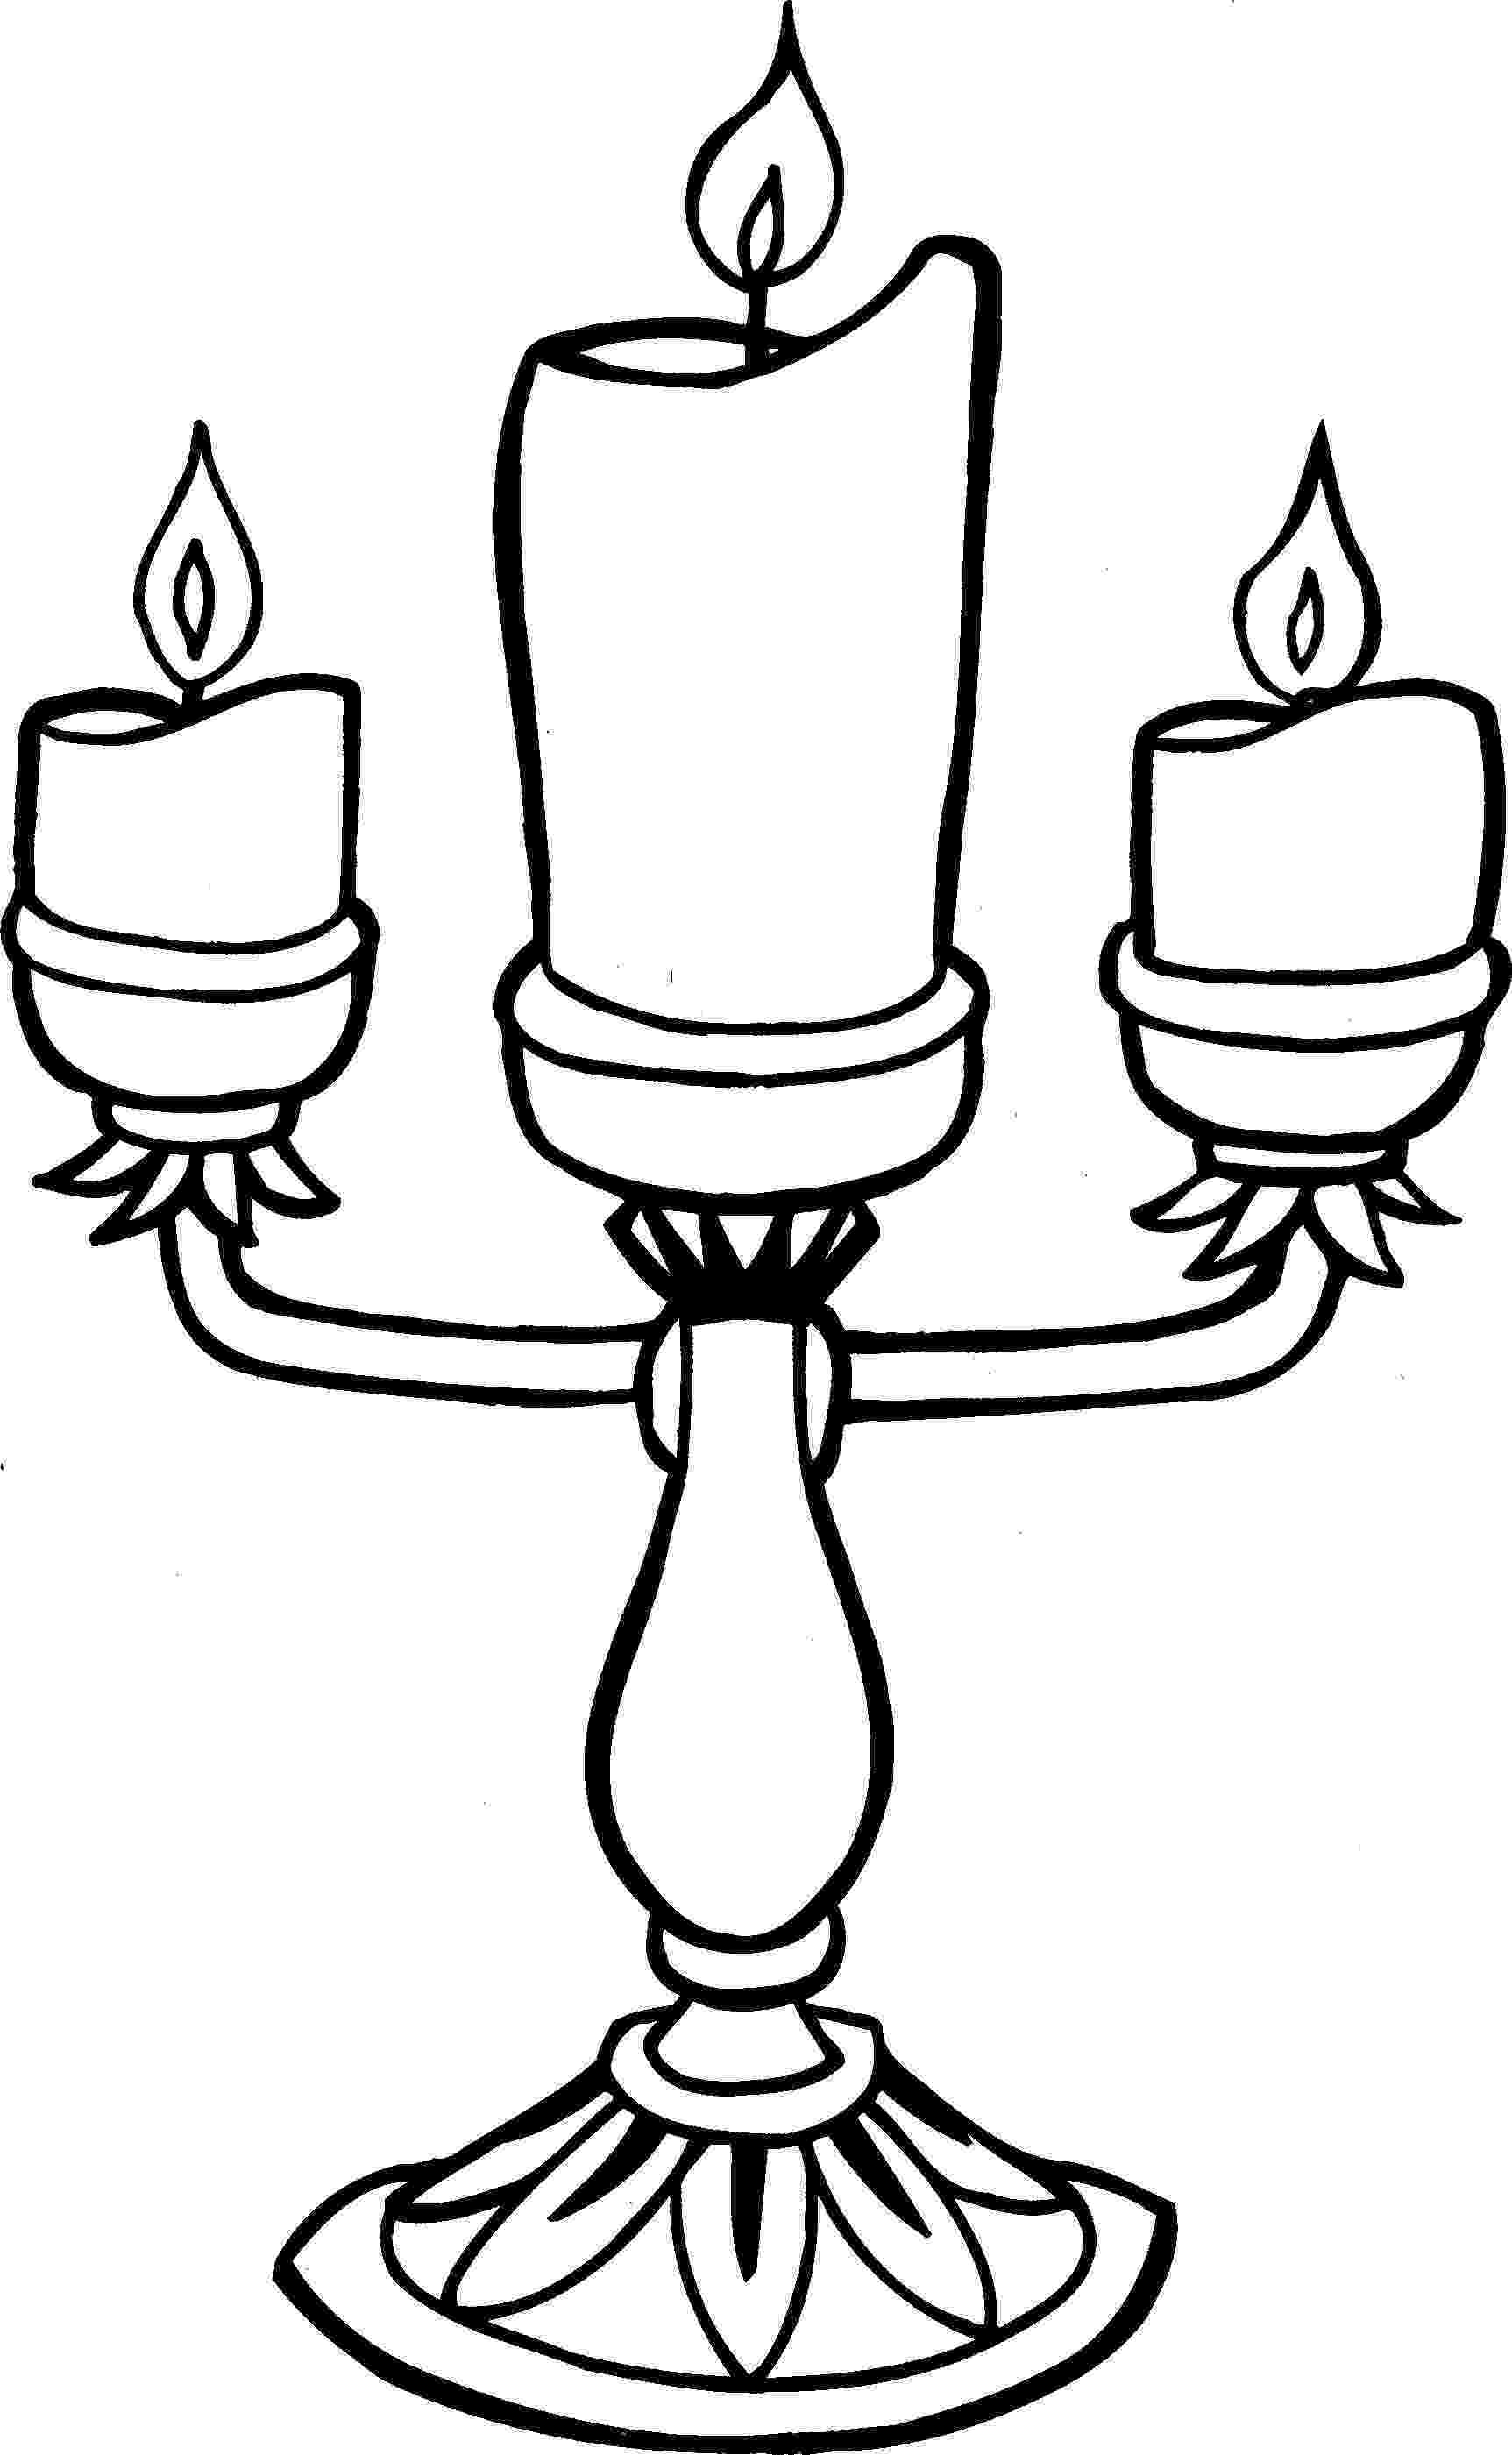 coloring pages for candle coloring pages to download and print for free coloring for pages